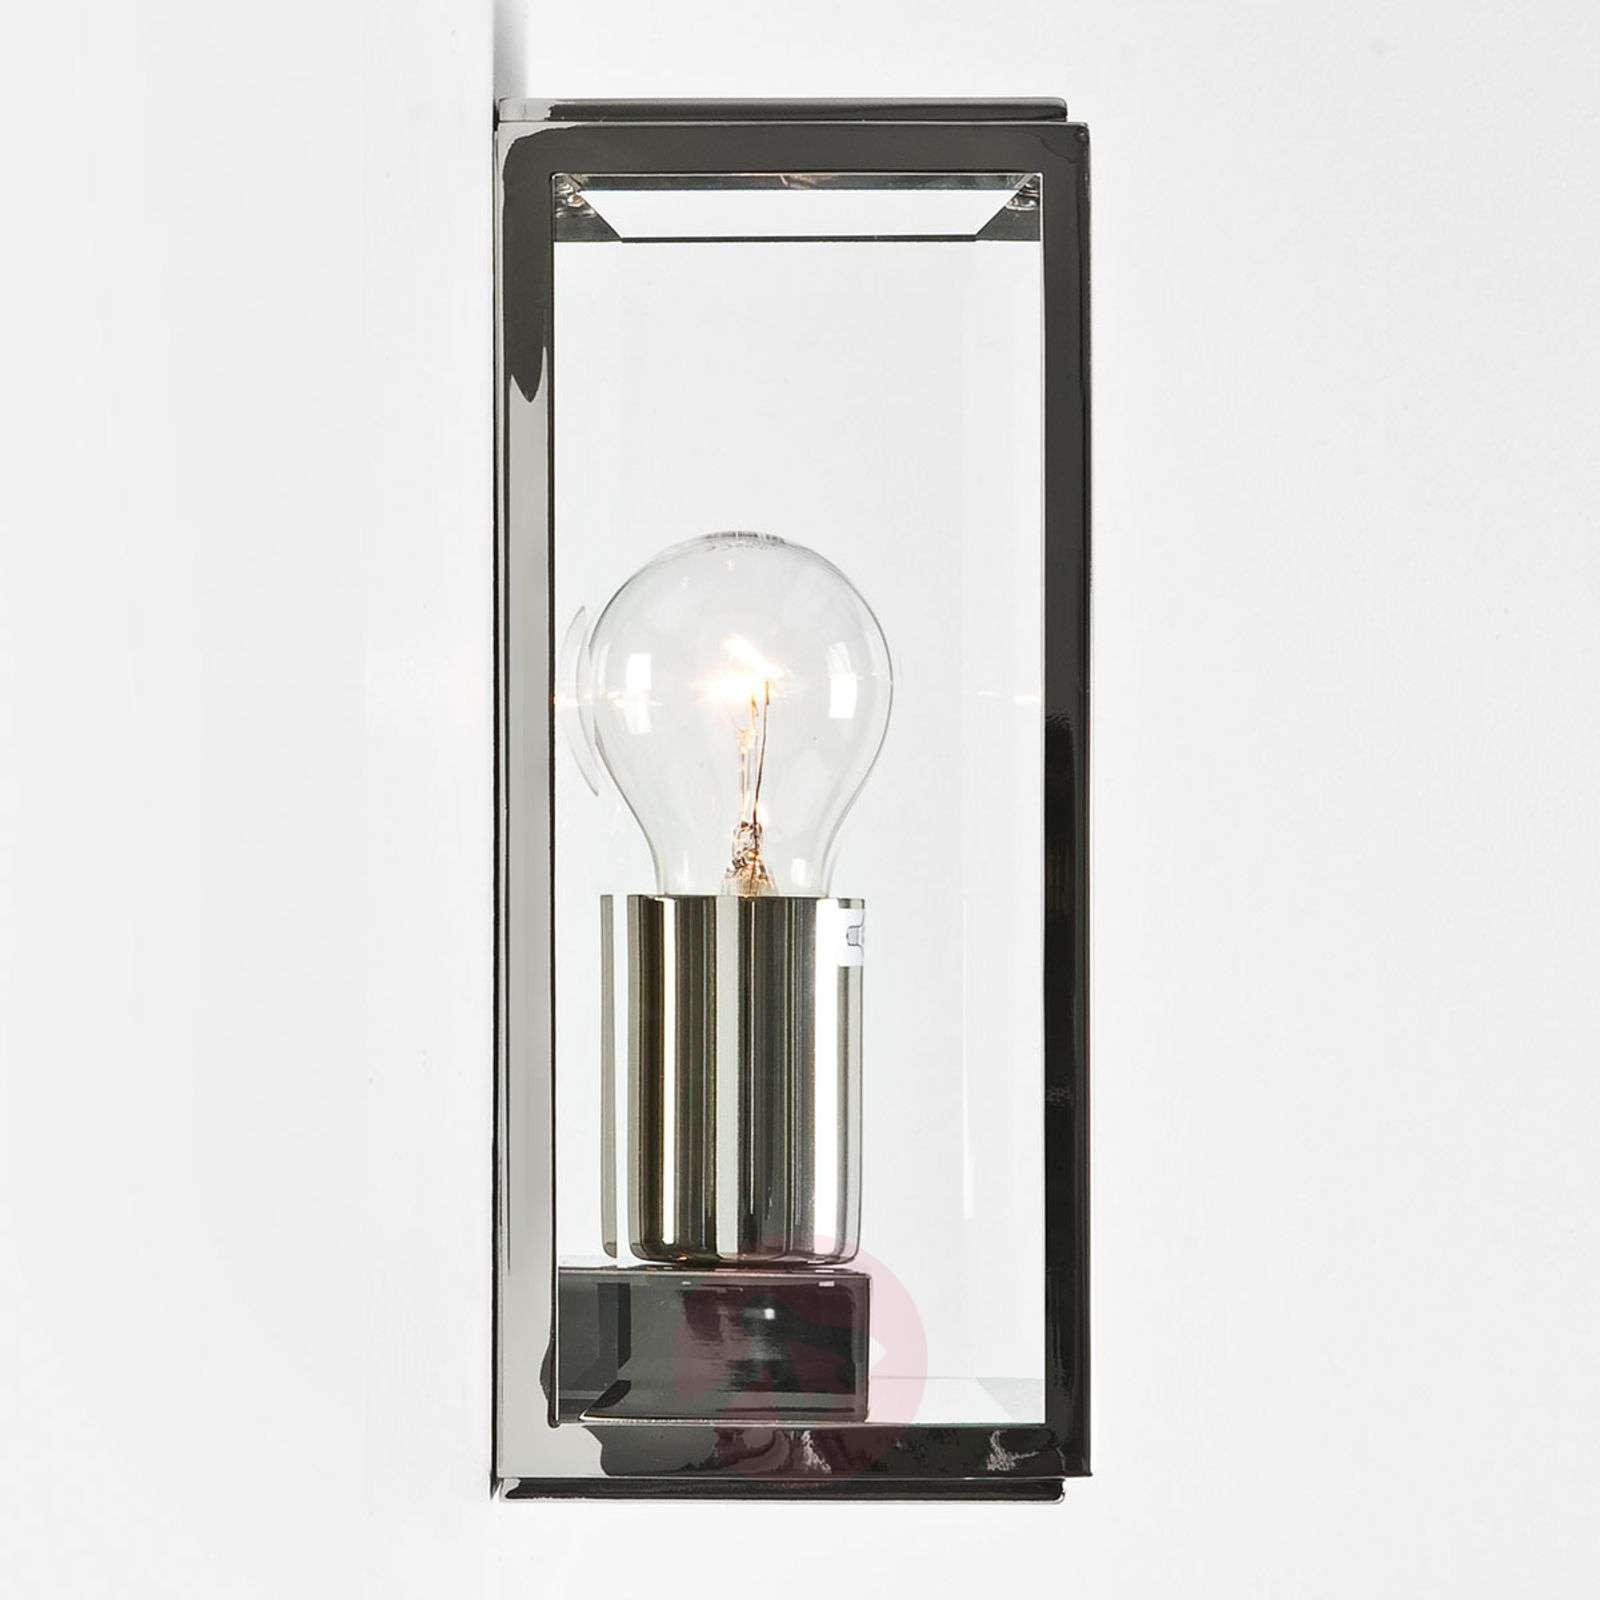 Homefield Square outside wall light decorative-1020281X-03